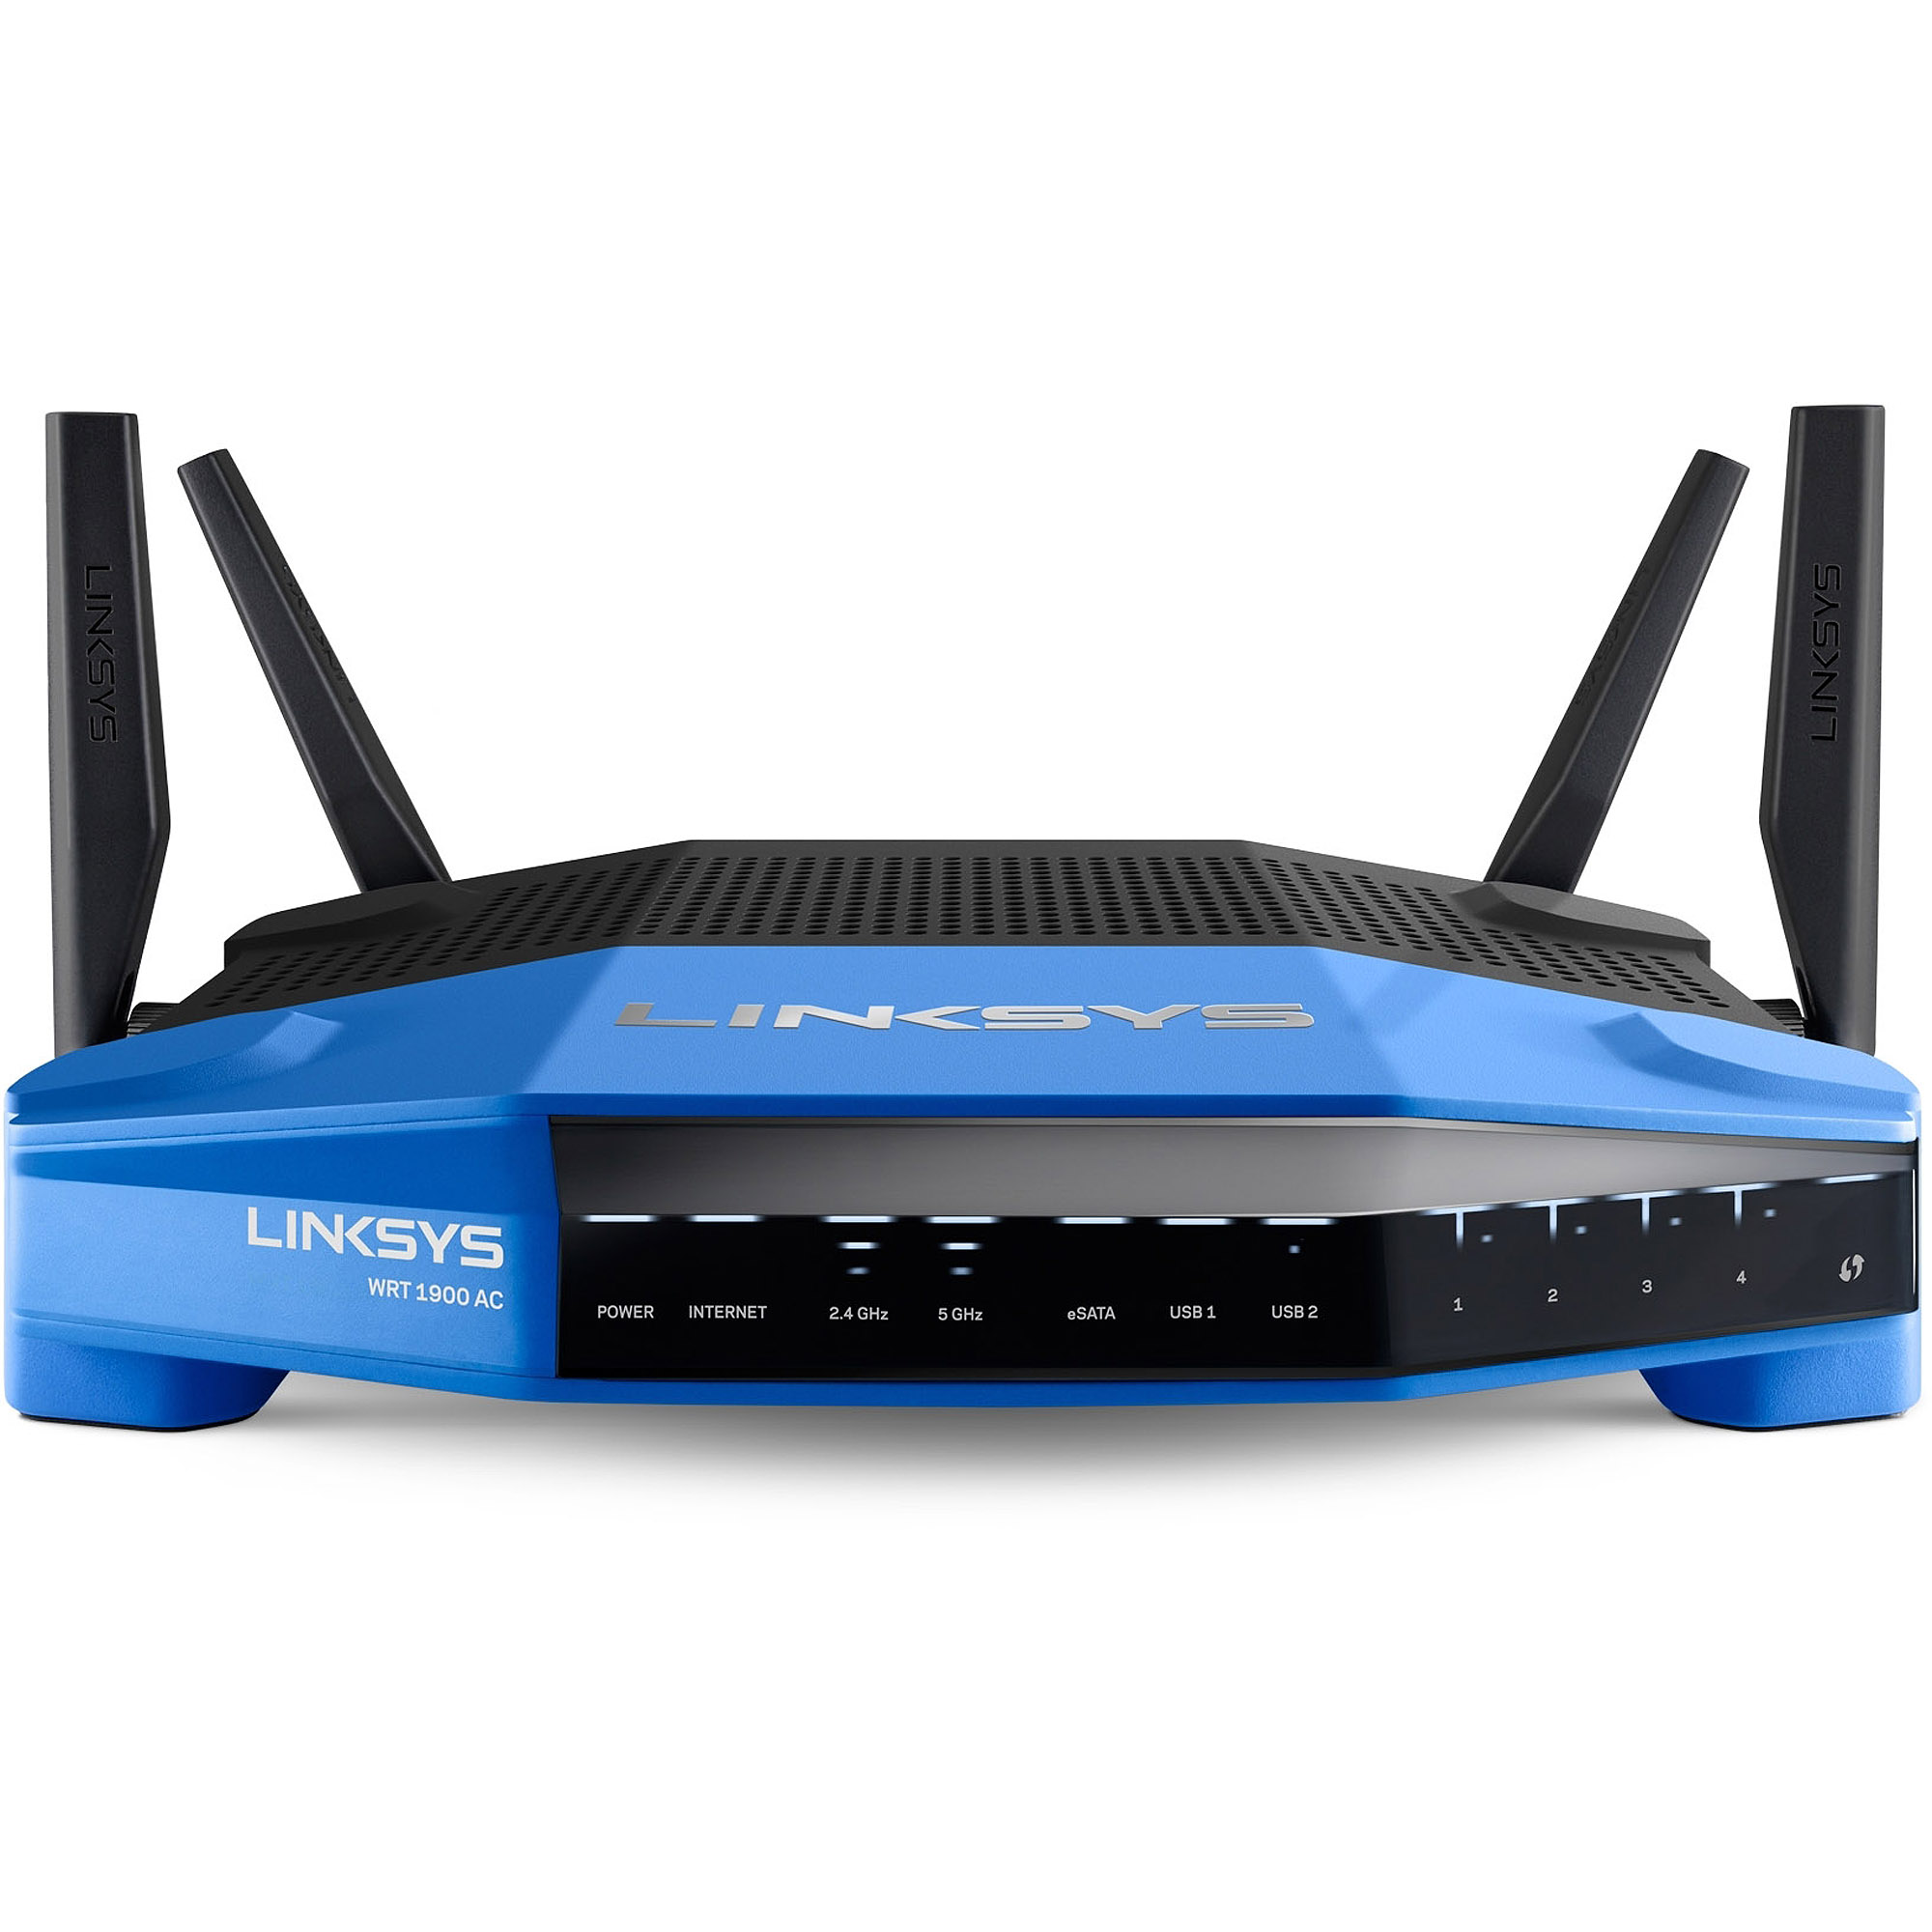 Linksys WRT1900AC Wireless AC Router